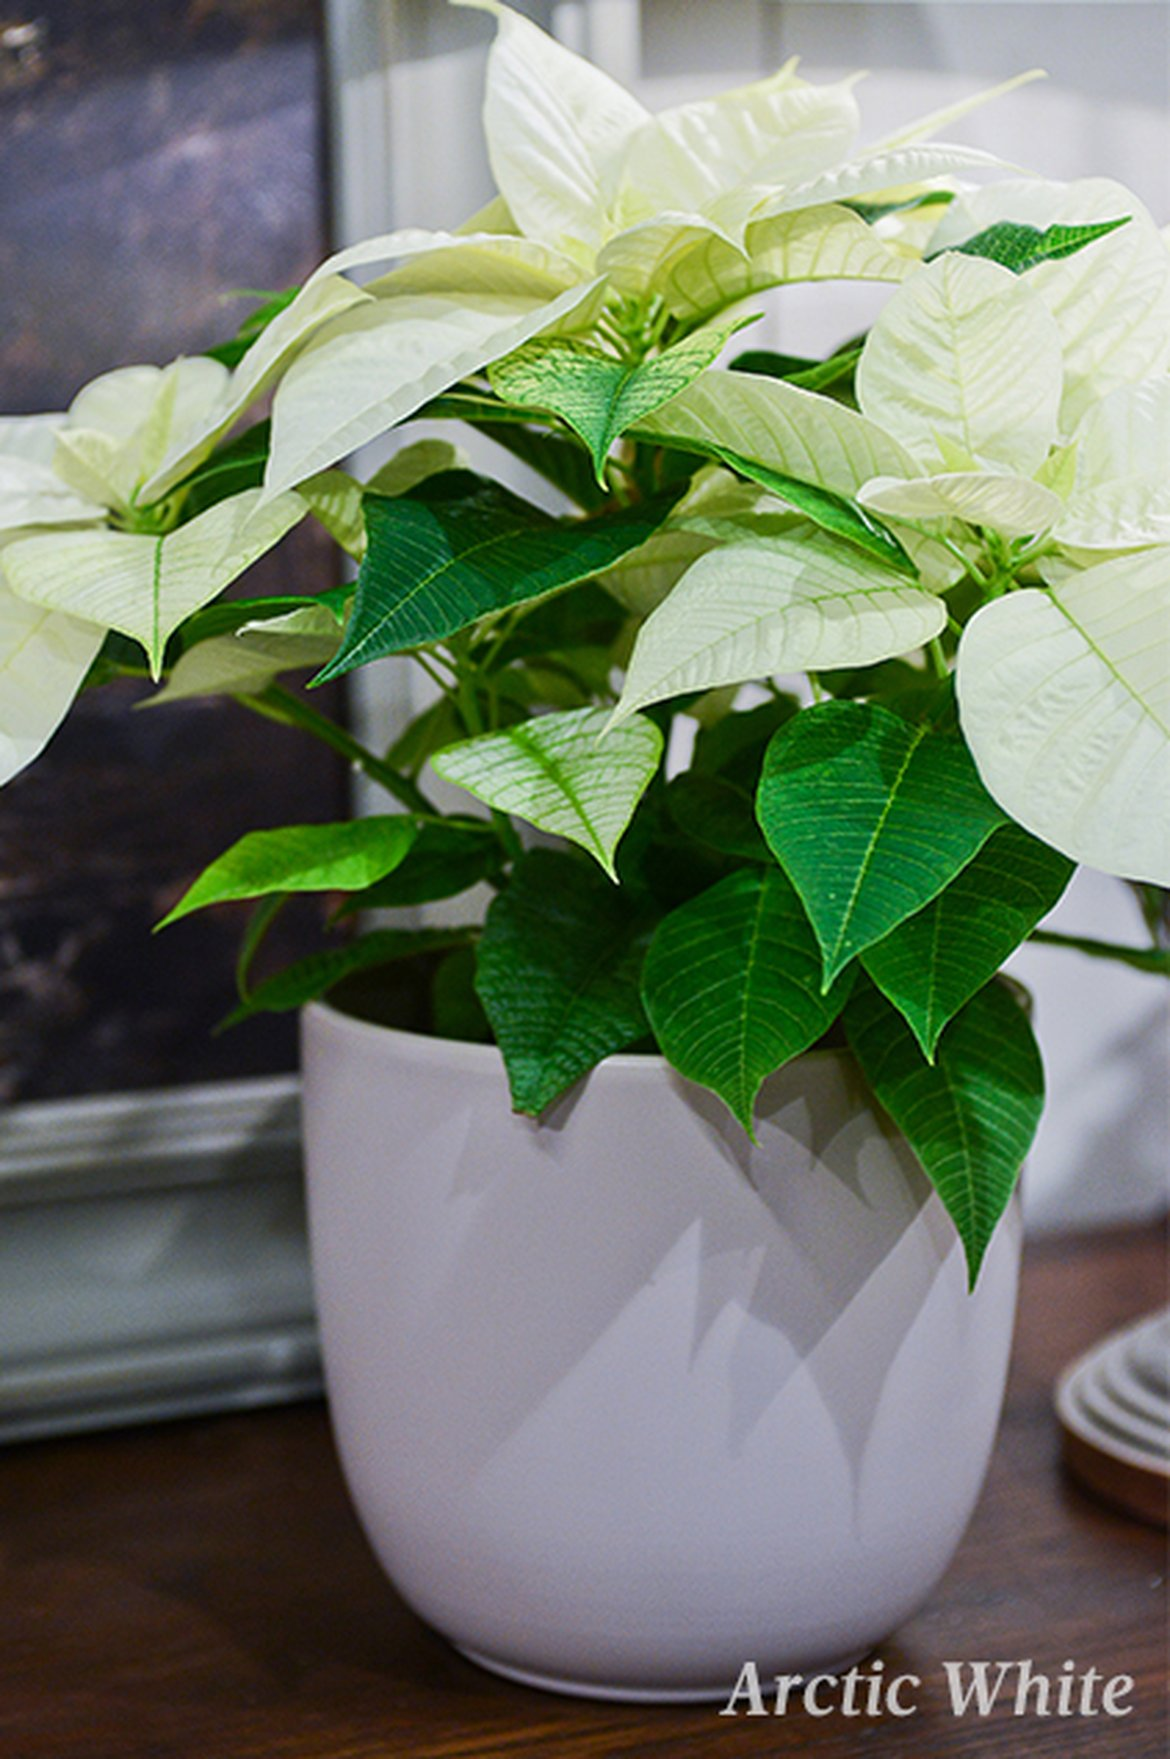 Poinsettia - Arctic White